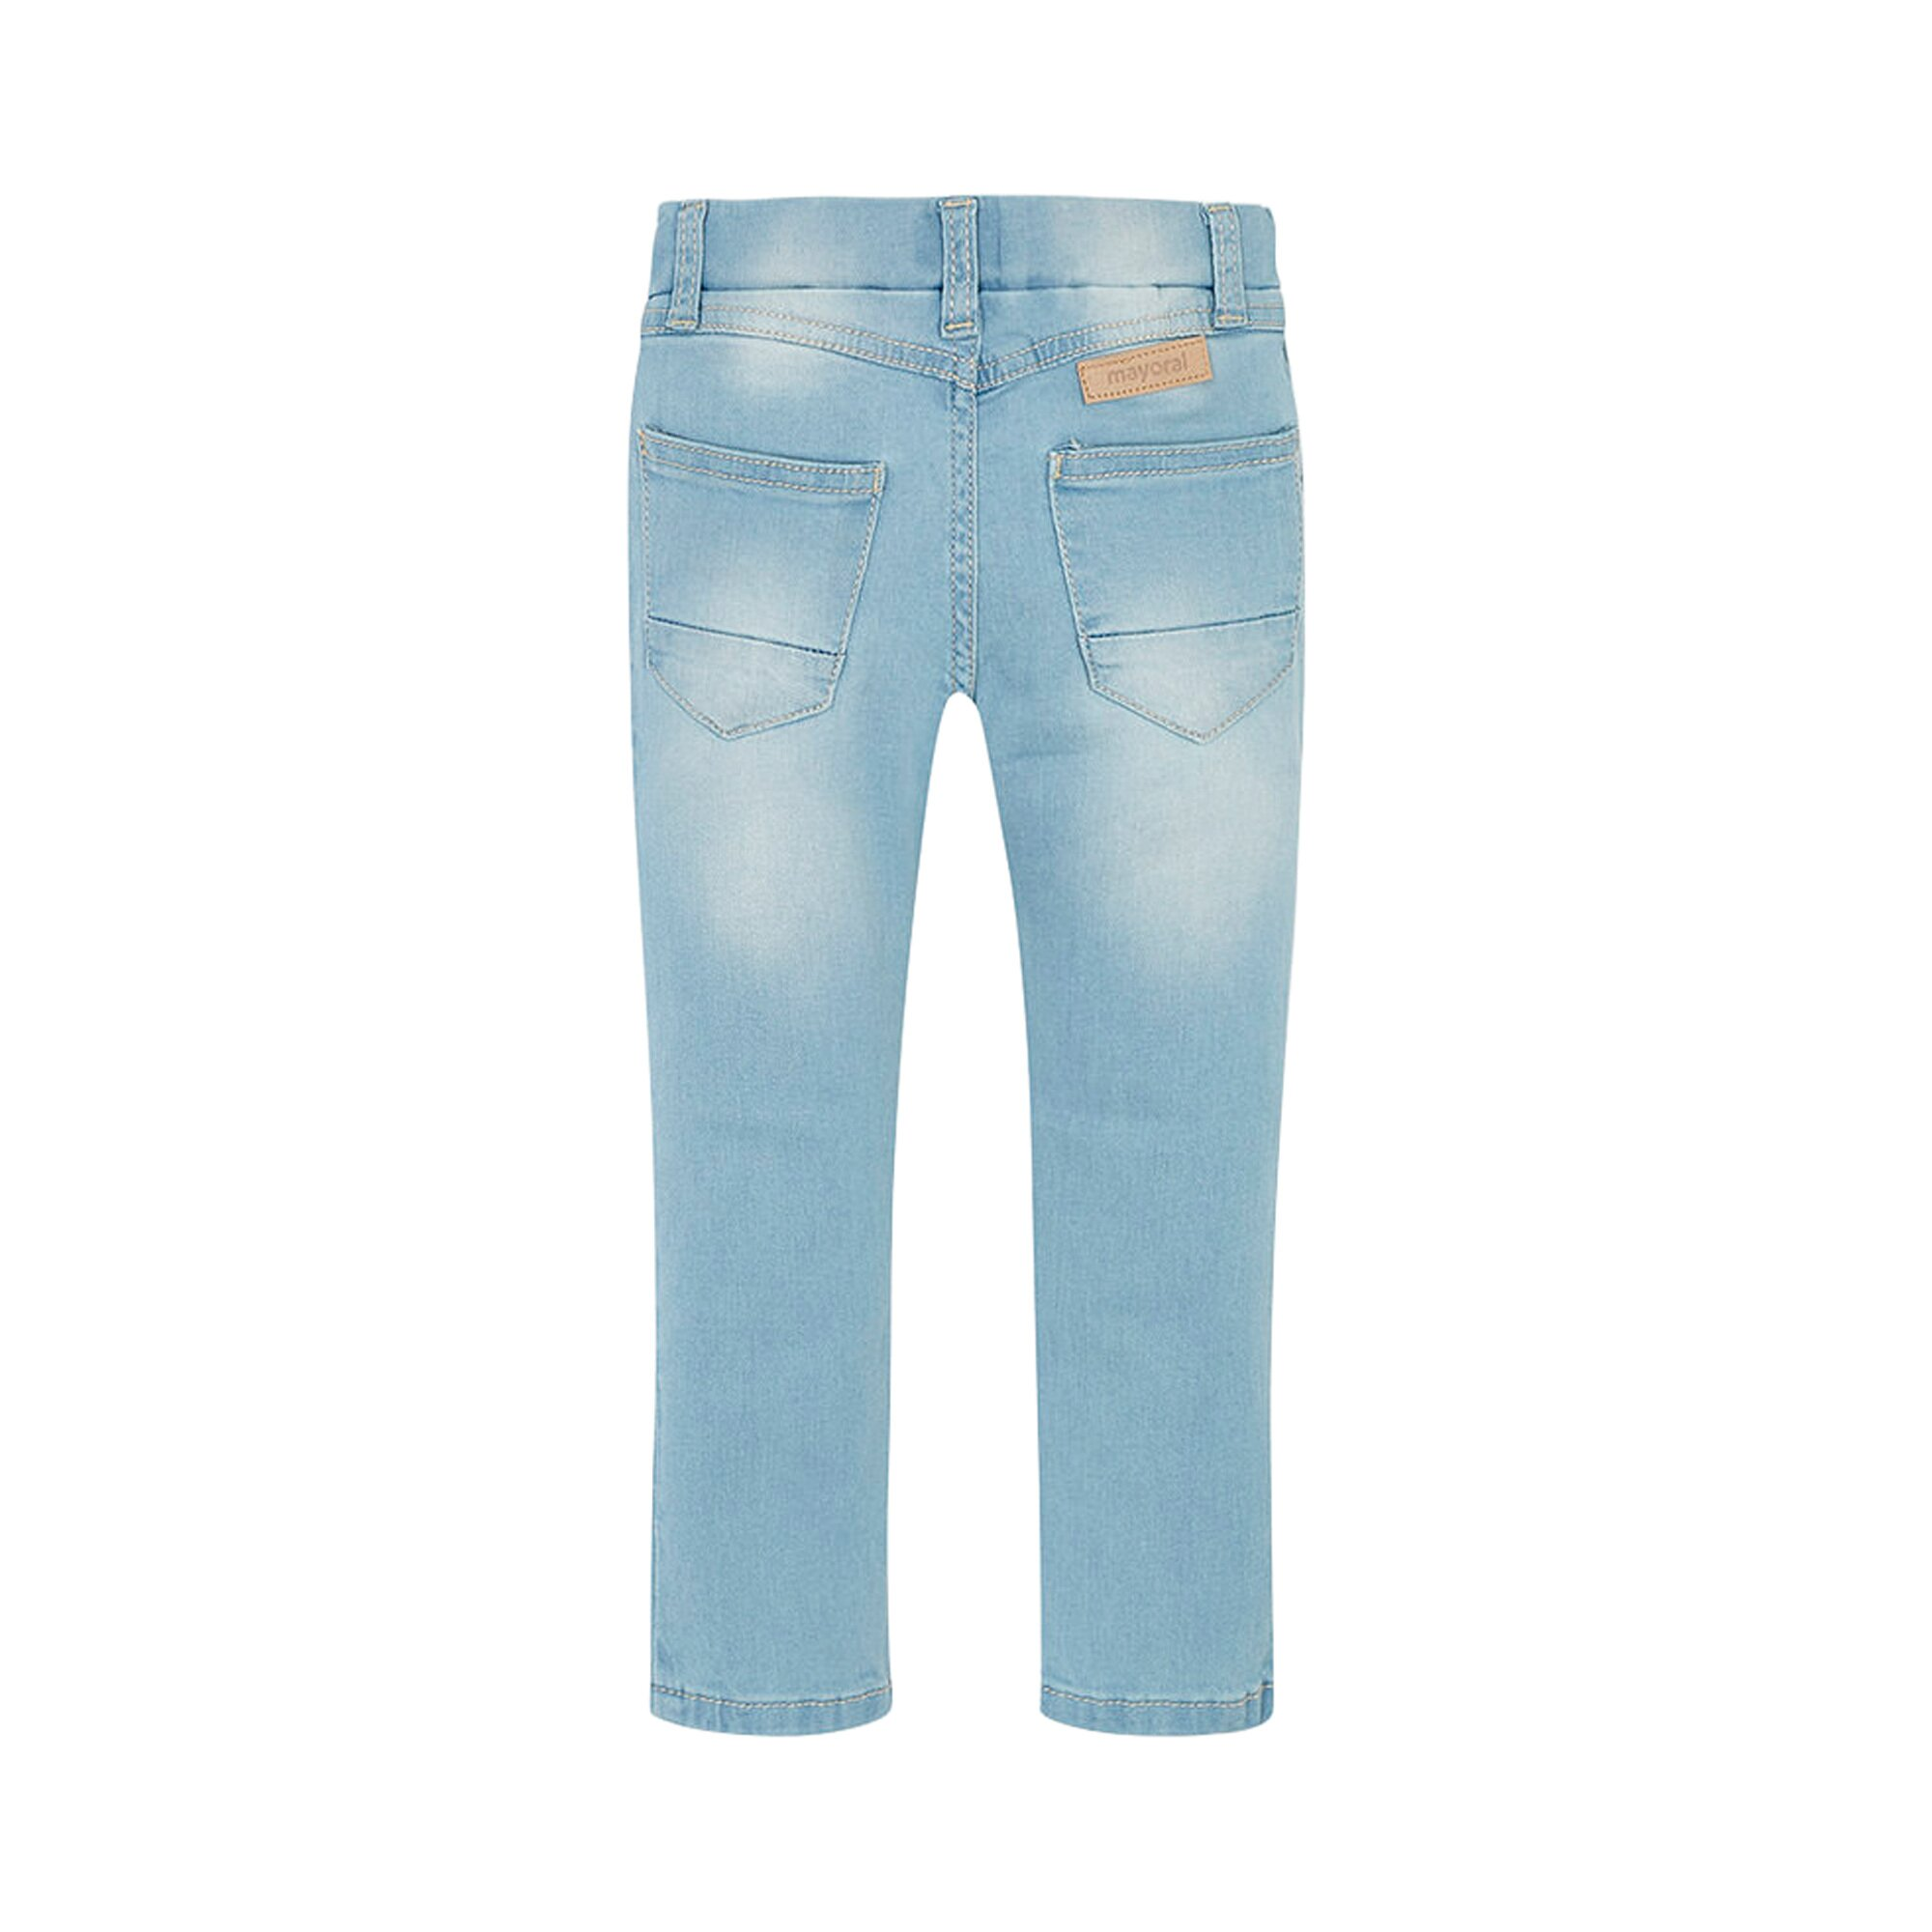 mayoral-jeggings-5-pocket